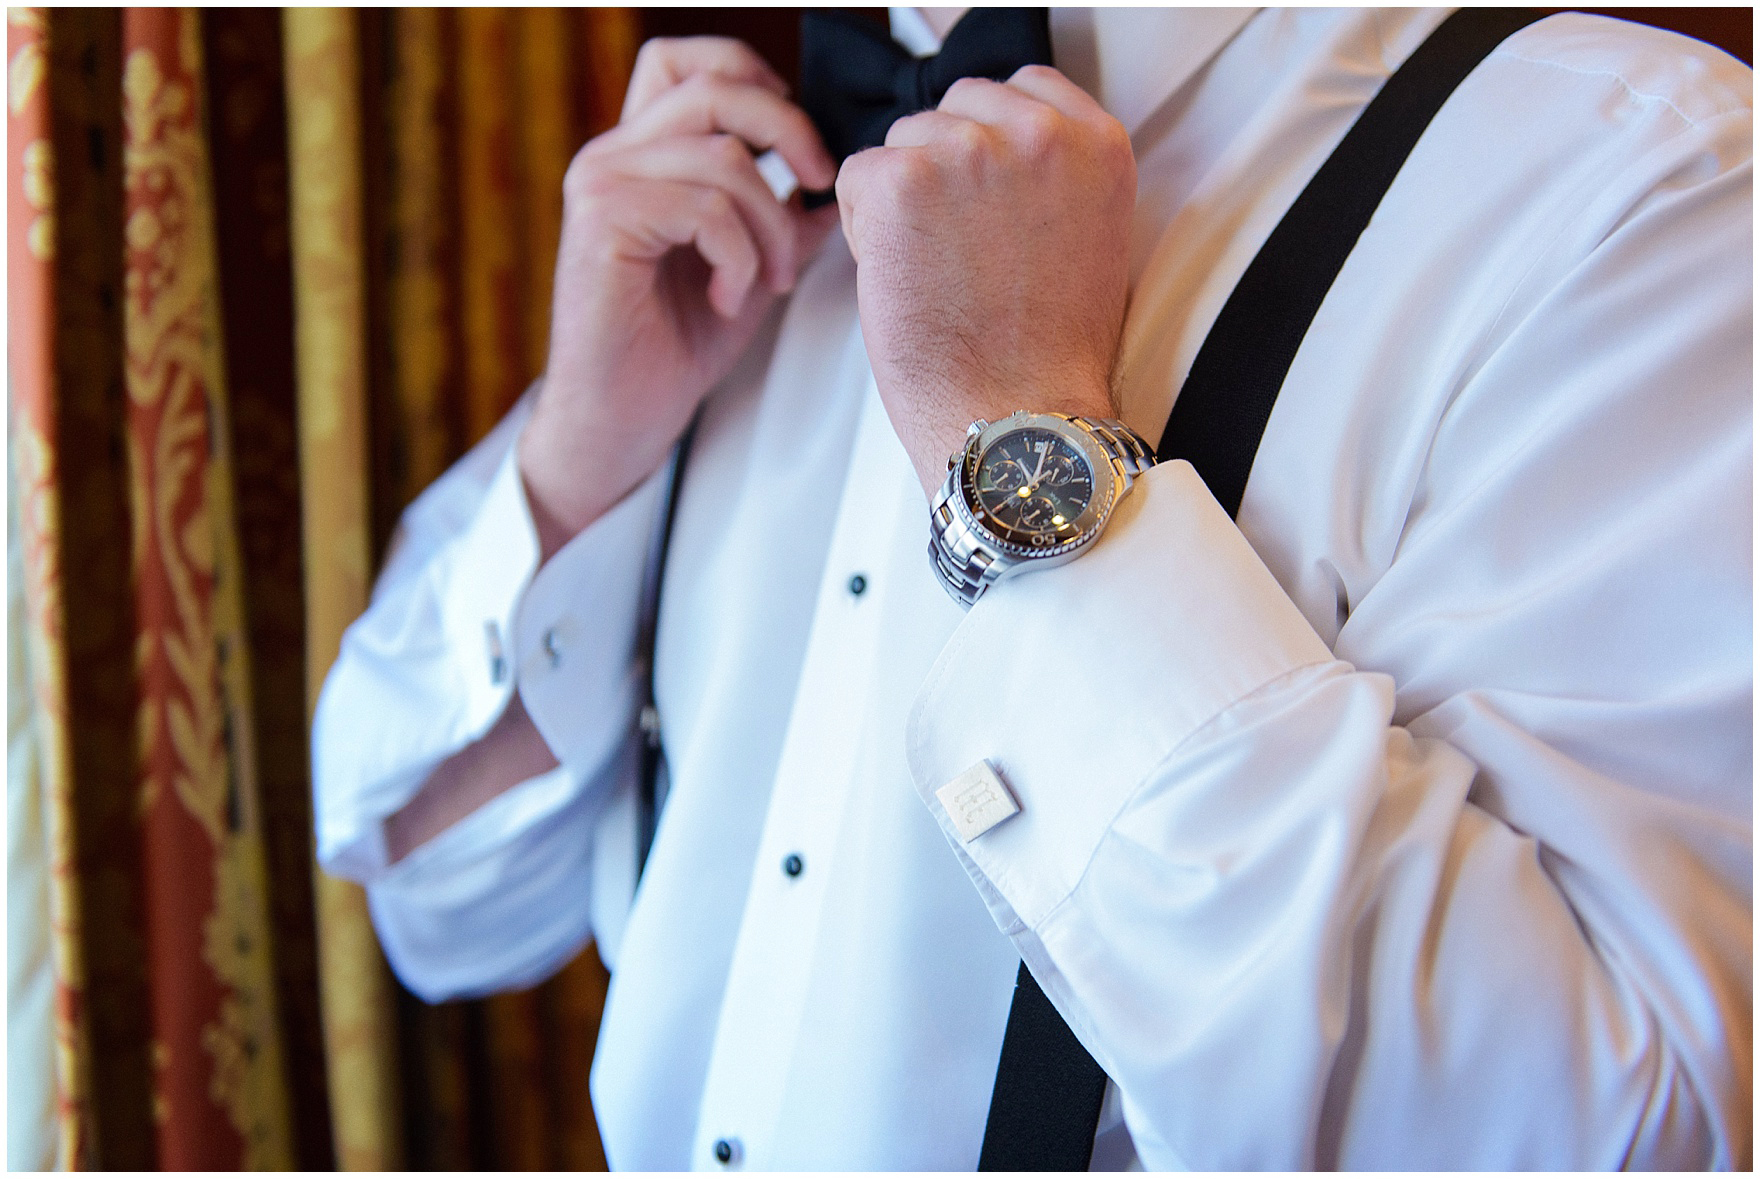 The groom ties his bow tie before his University Club of Chicago wedding.